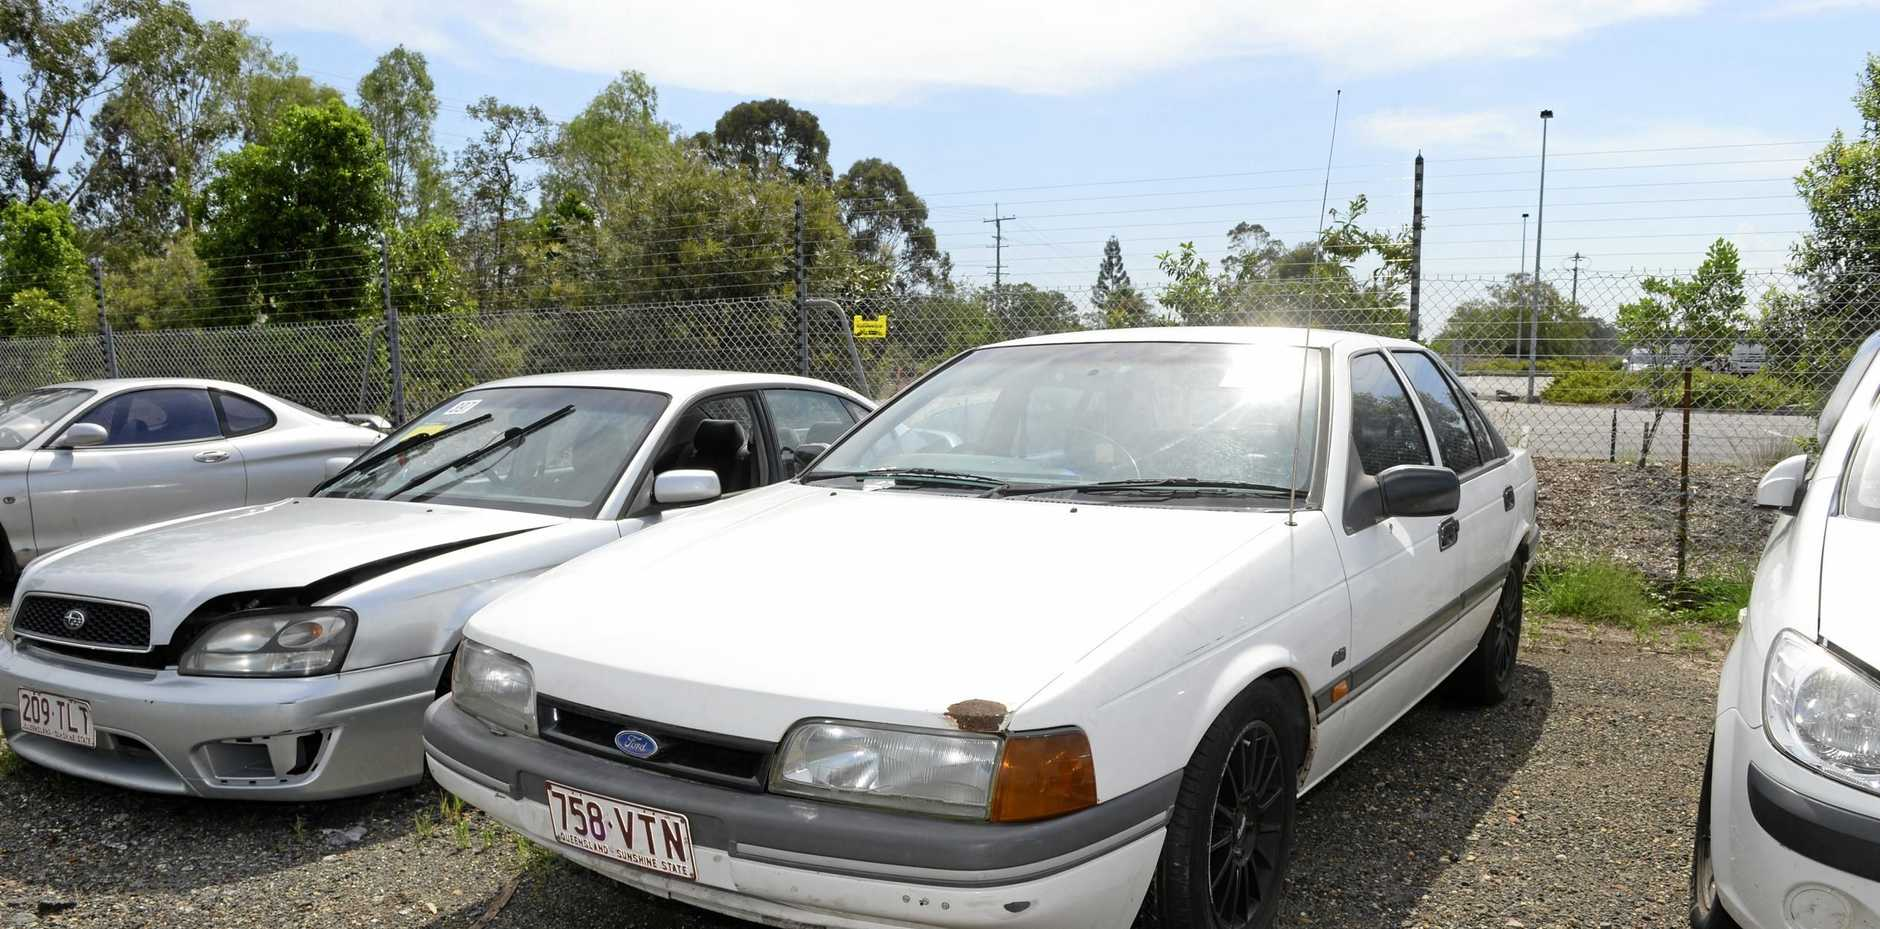 More than 50 cars have been impounded across the region.